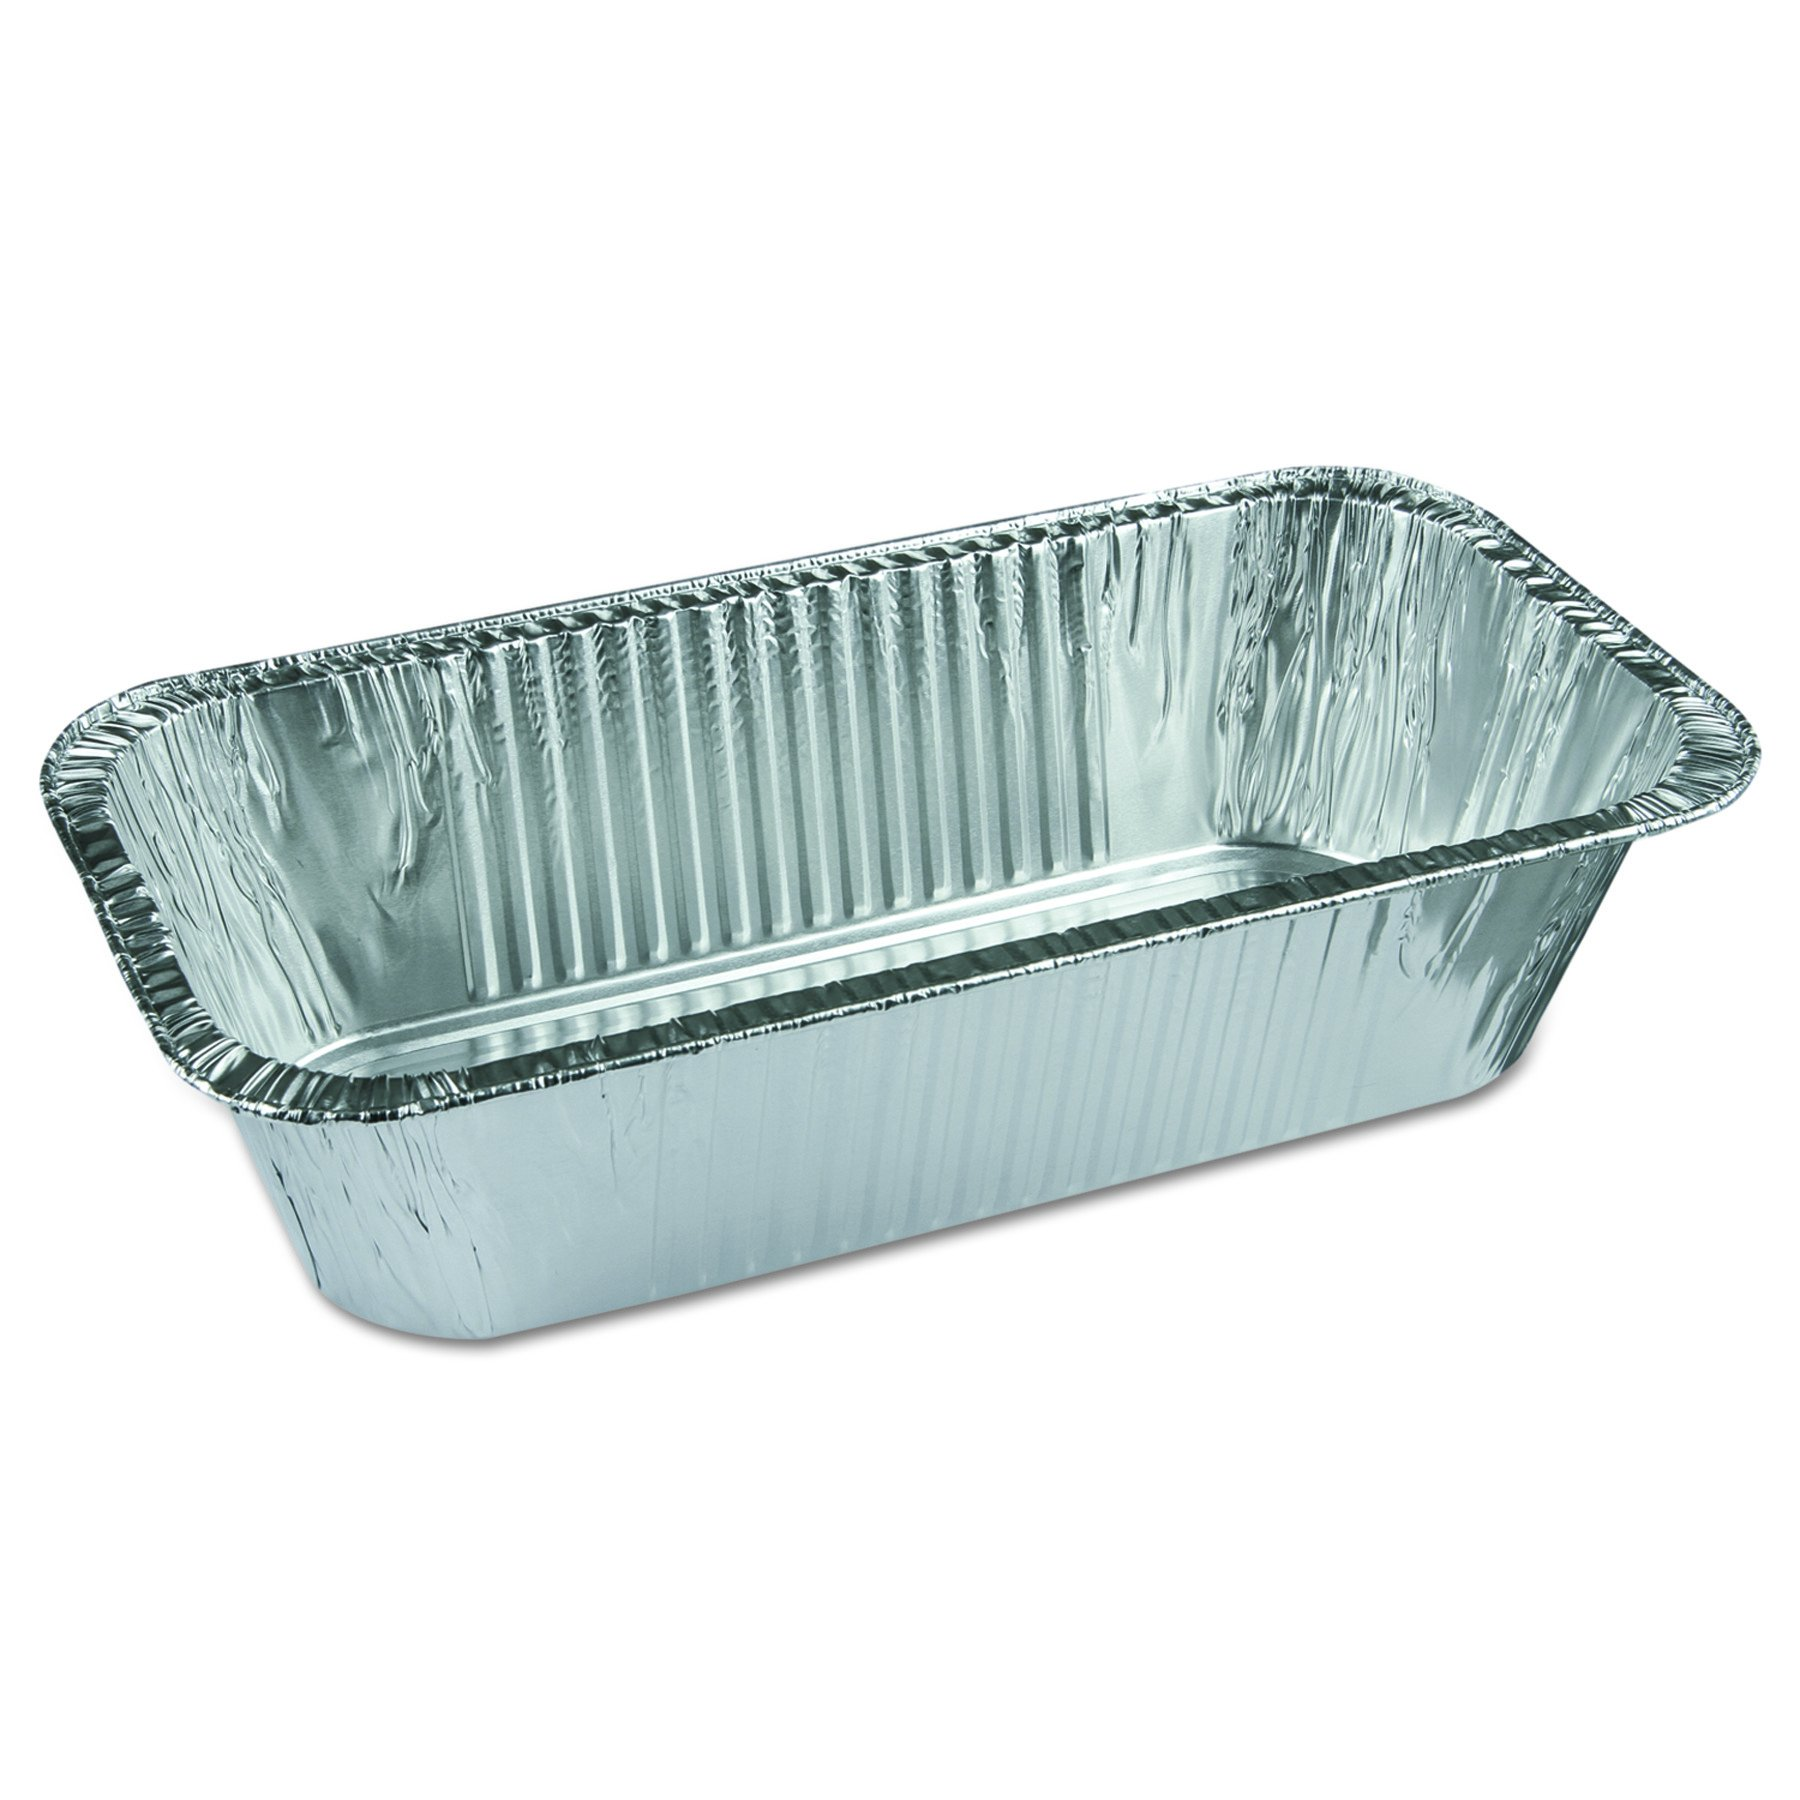 Pactiv Y6062XH Ribbed 1/3-Size Aluminum Bread Pans, 1 Compartment, 8 2/5w x 5 9/10d x 3h (Case of 200)